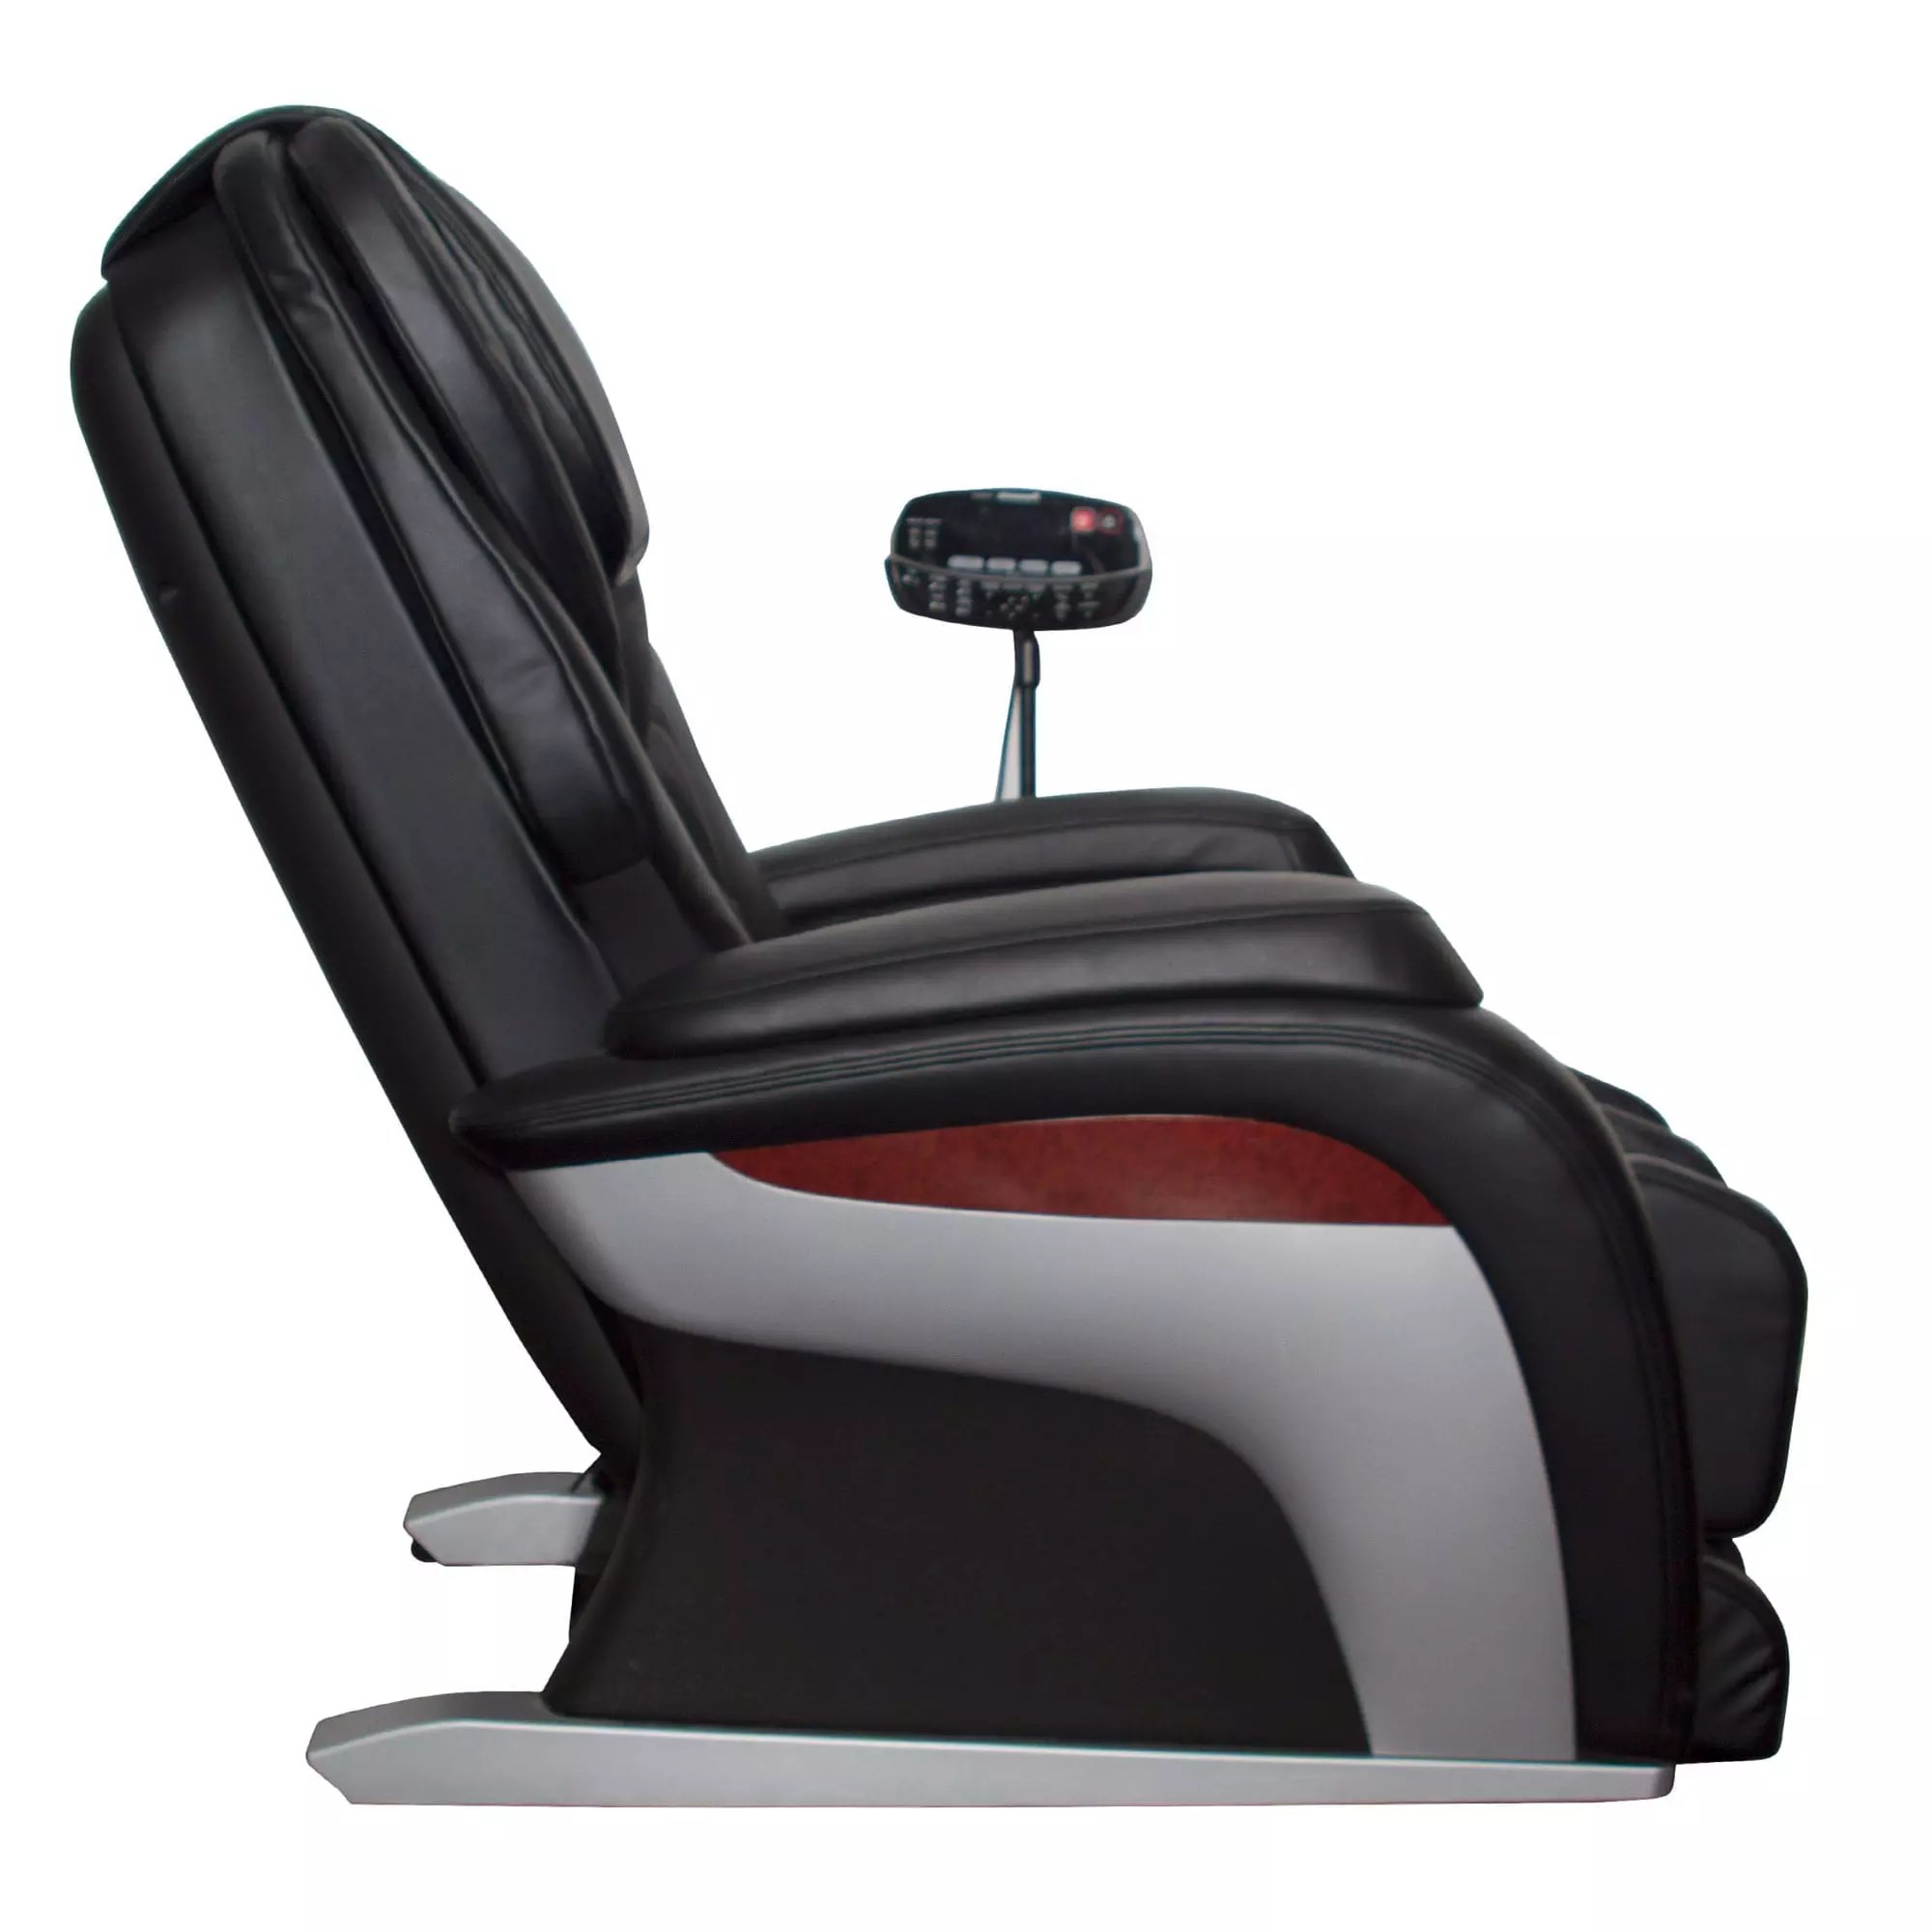 Best Massage Chairs Ep Ma10 Massage Chair A Great Value From Panasonic